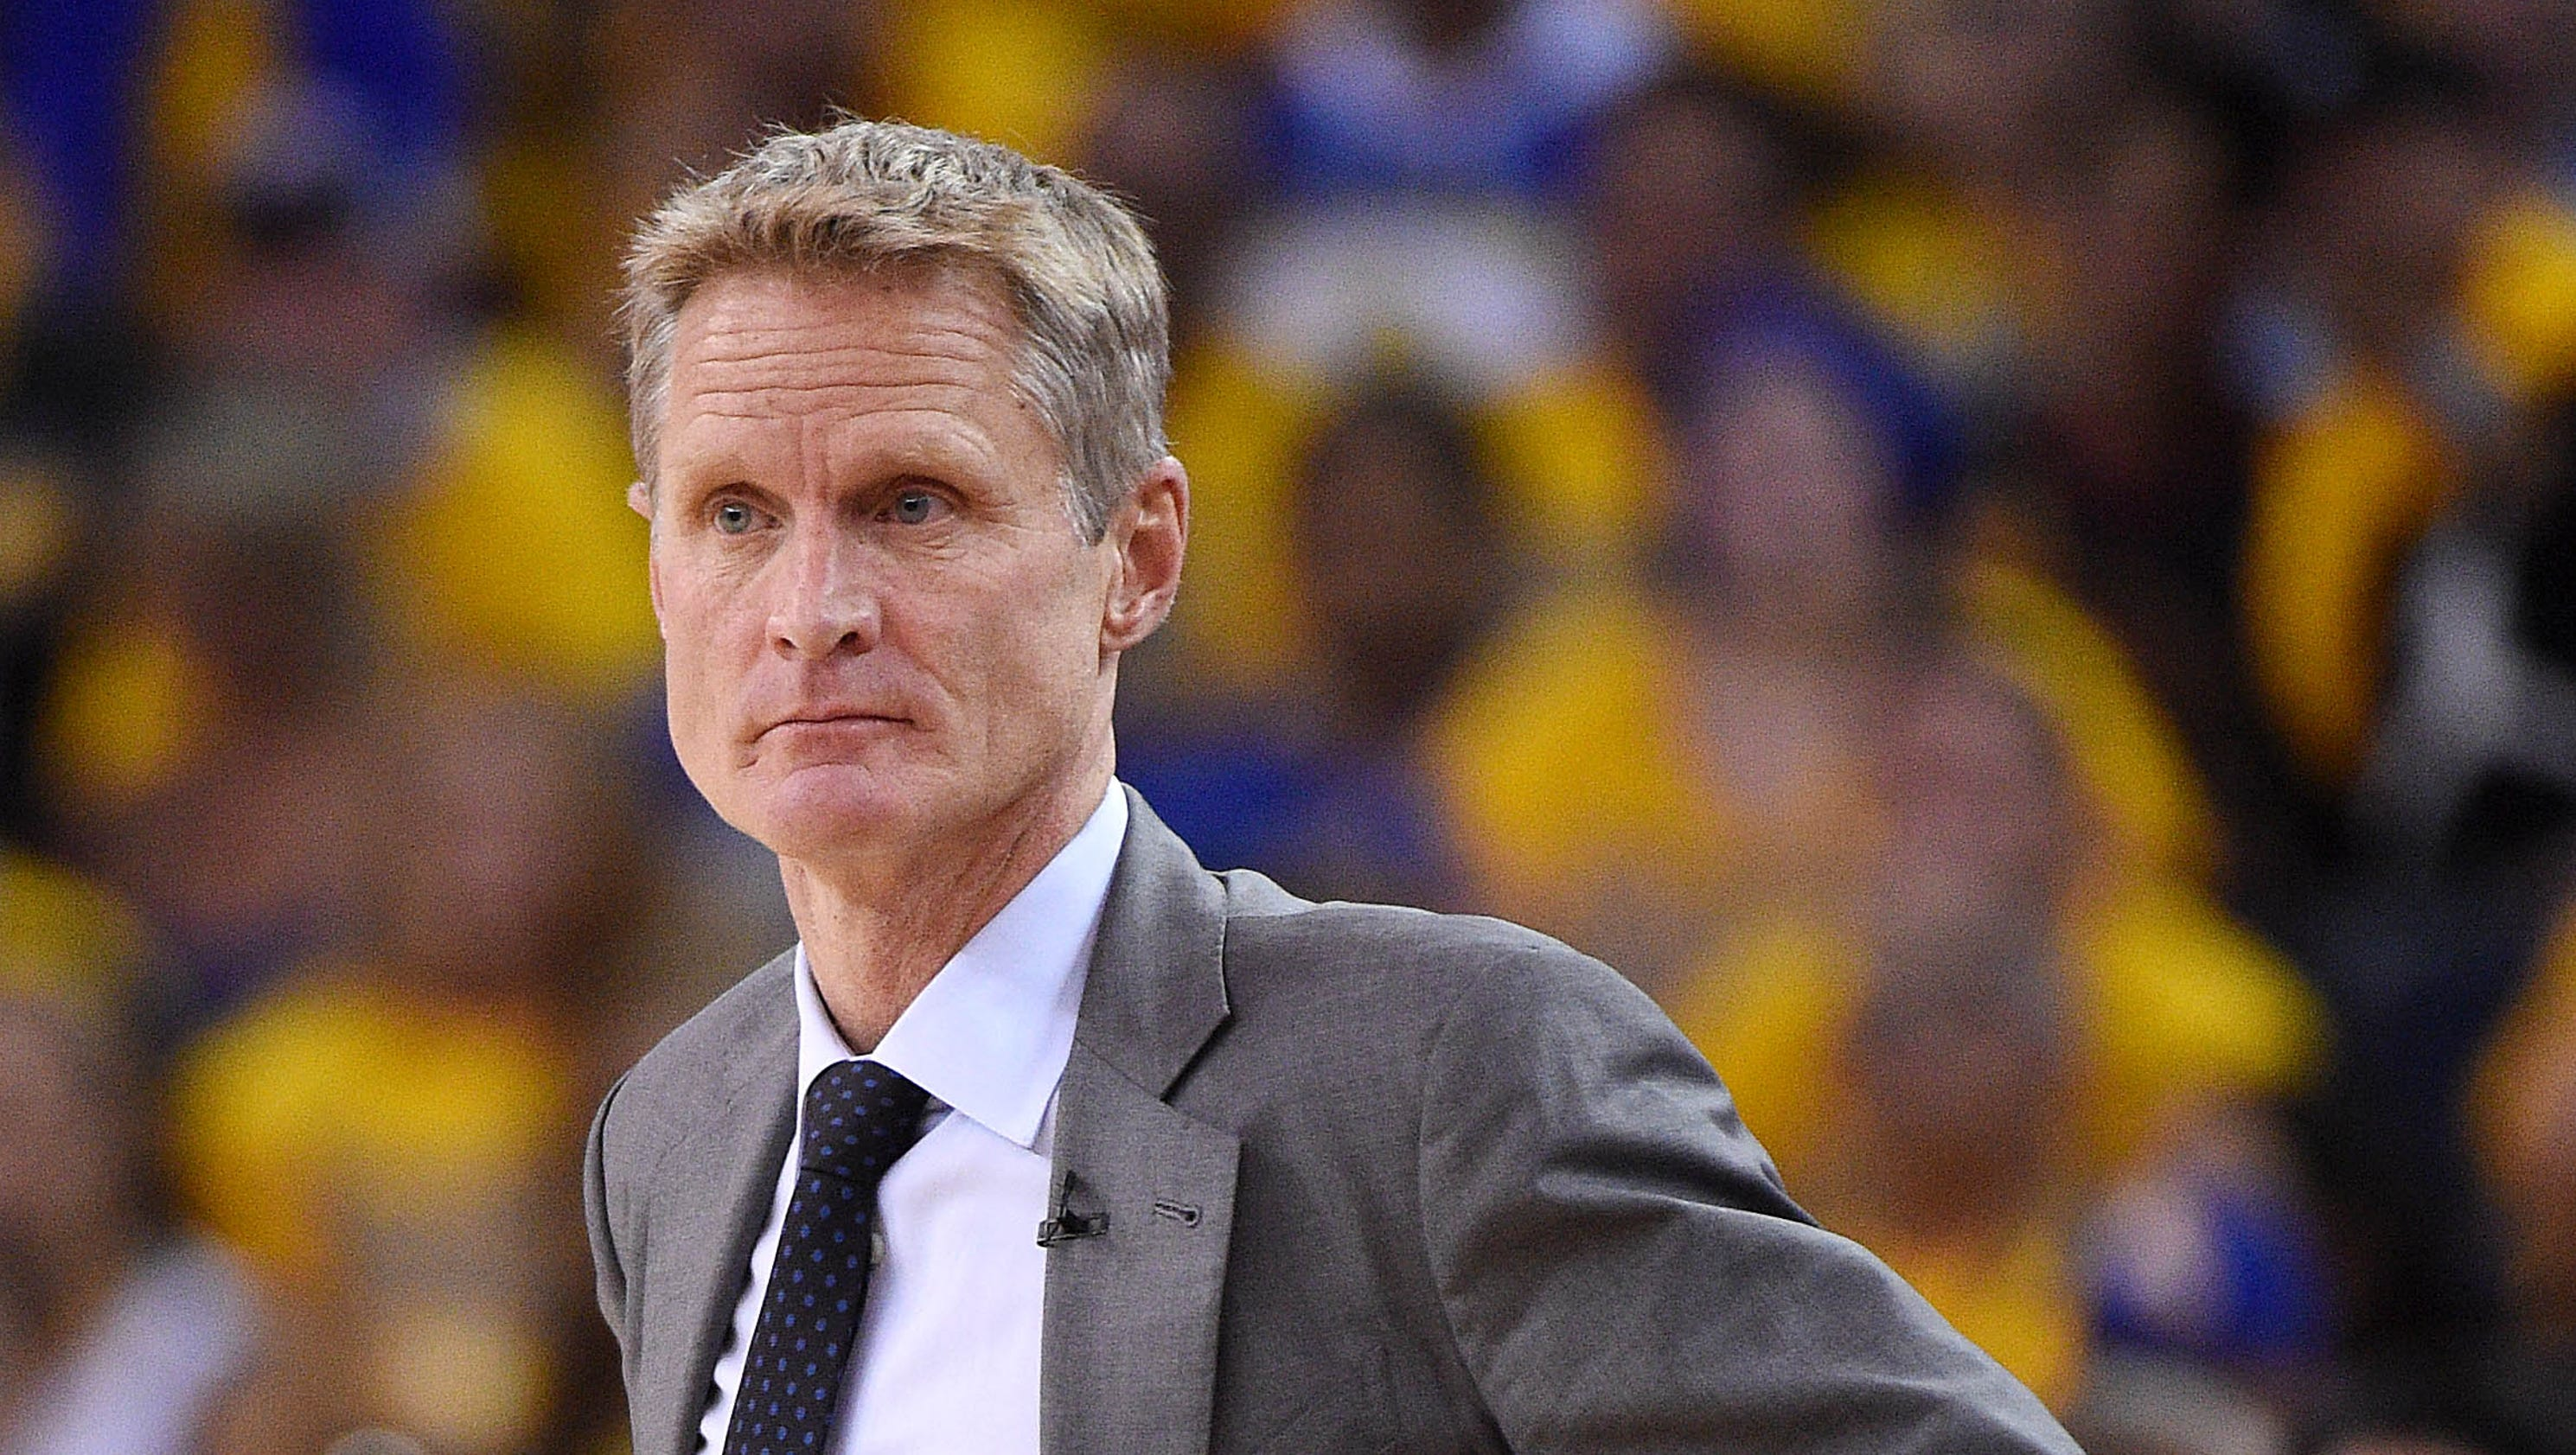 Steve Kerr voices support for Colin Kaepernick's protests